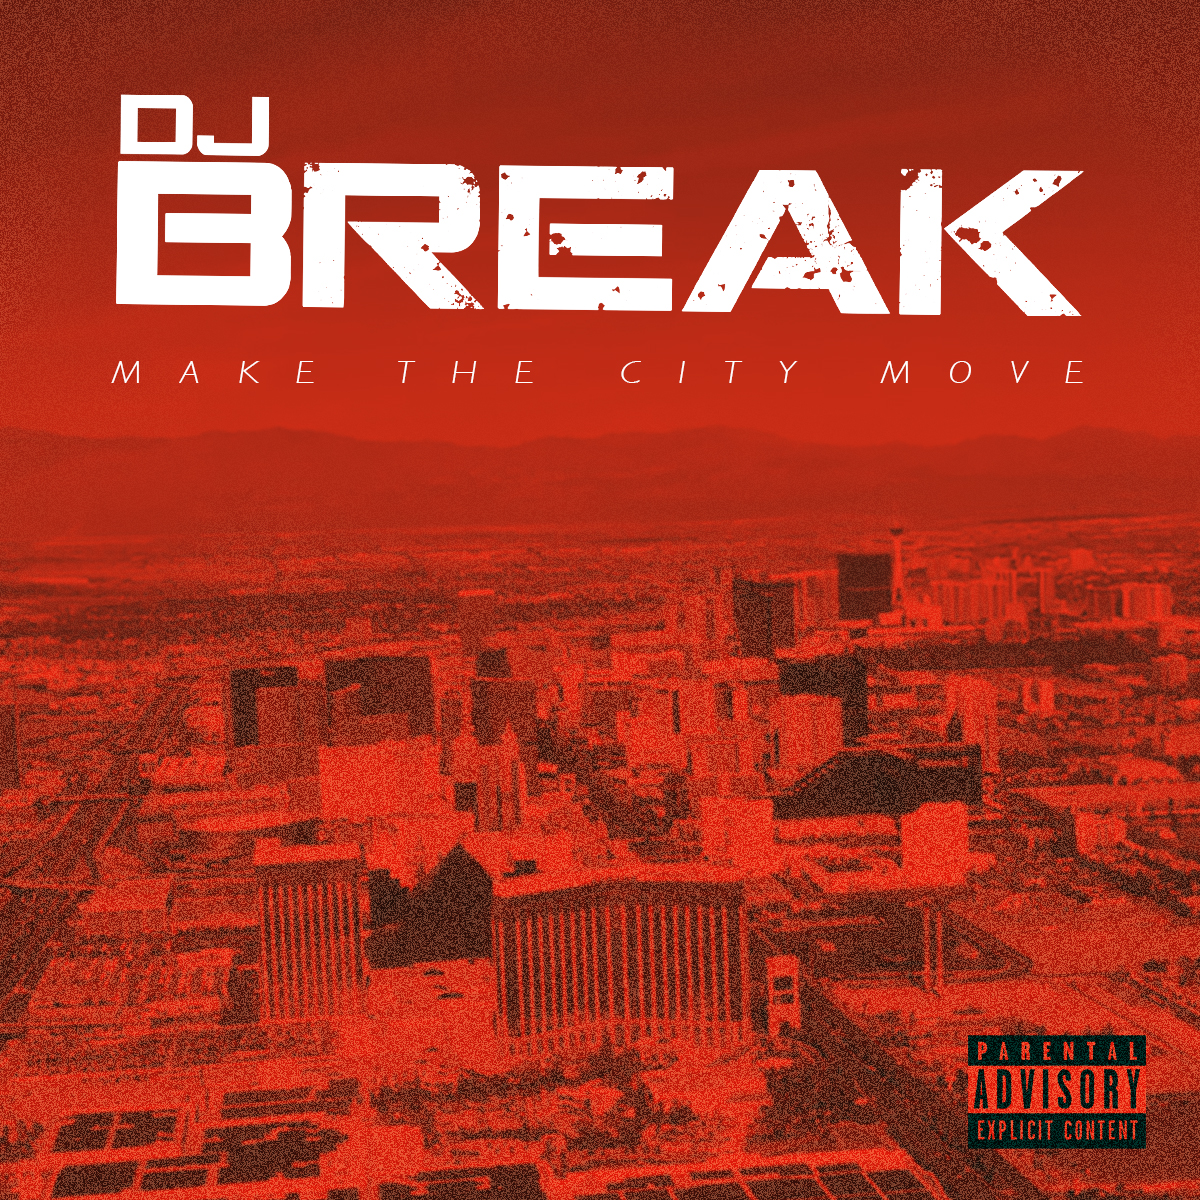 DJ Break - Make the City Move Mixtape - COVER ART